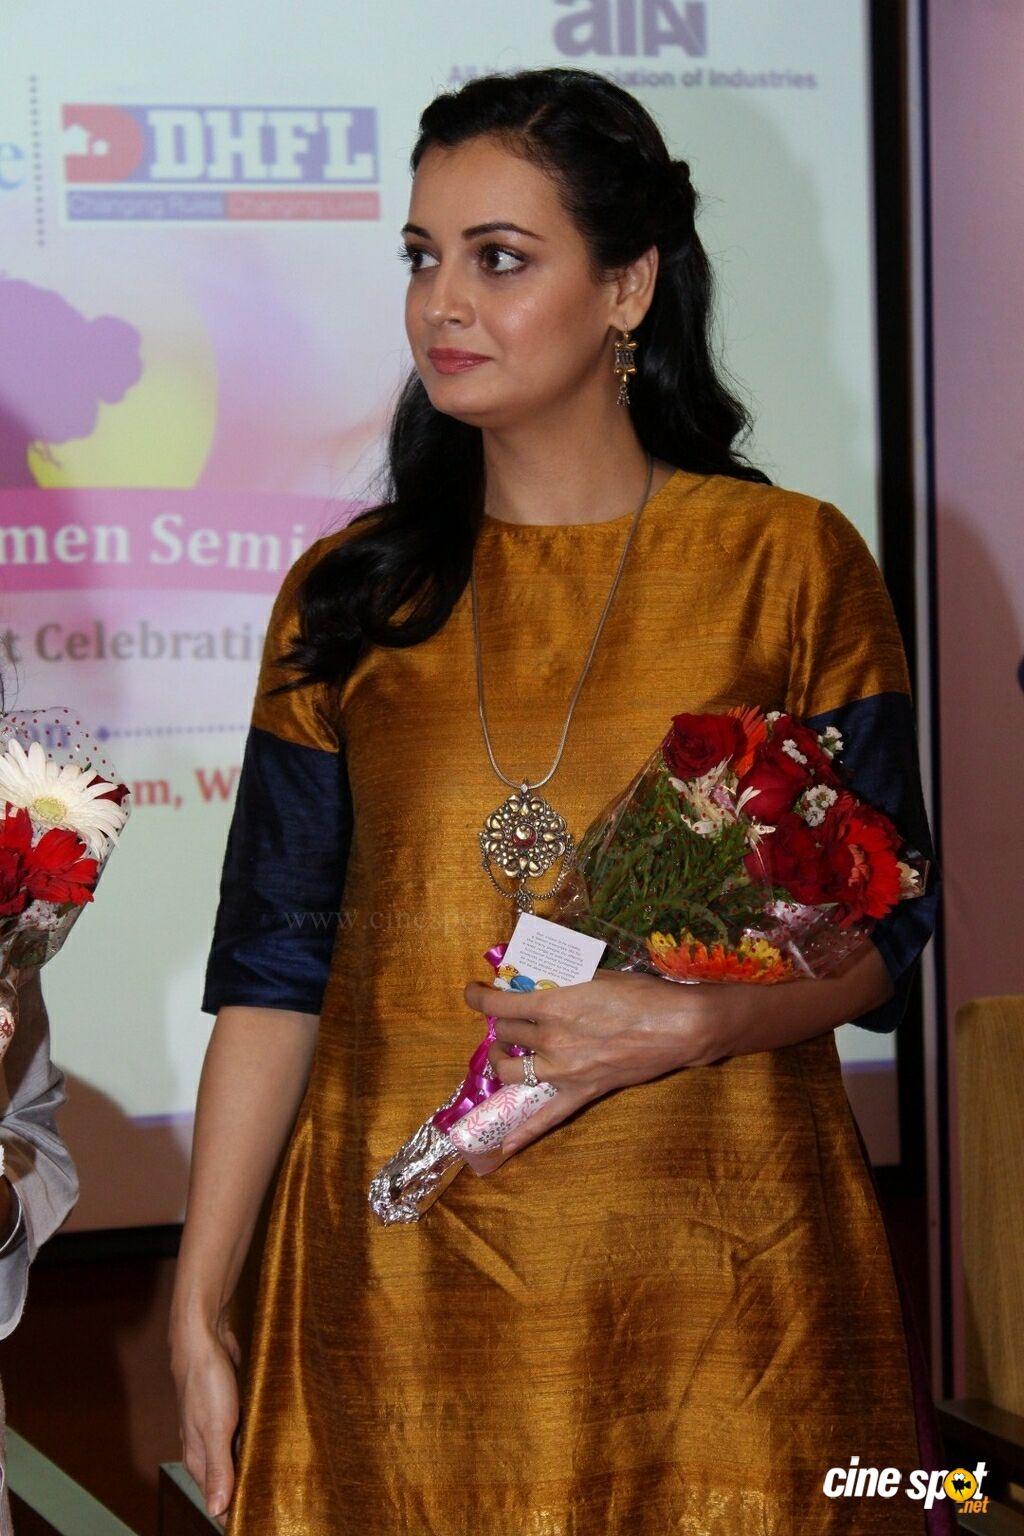 Attend Power Women Seminar To Celebrating Women (18)